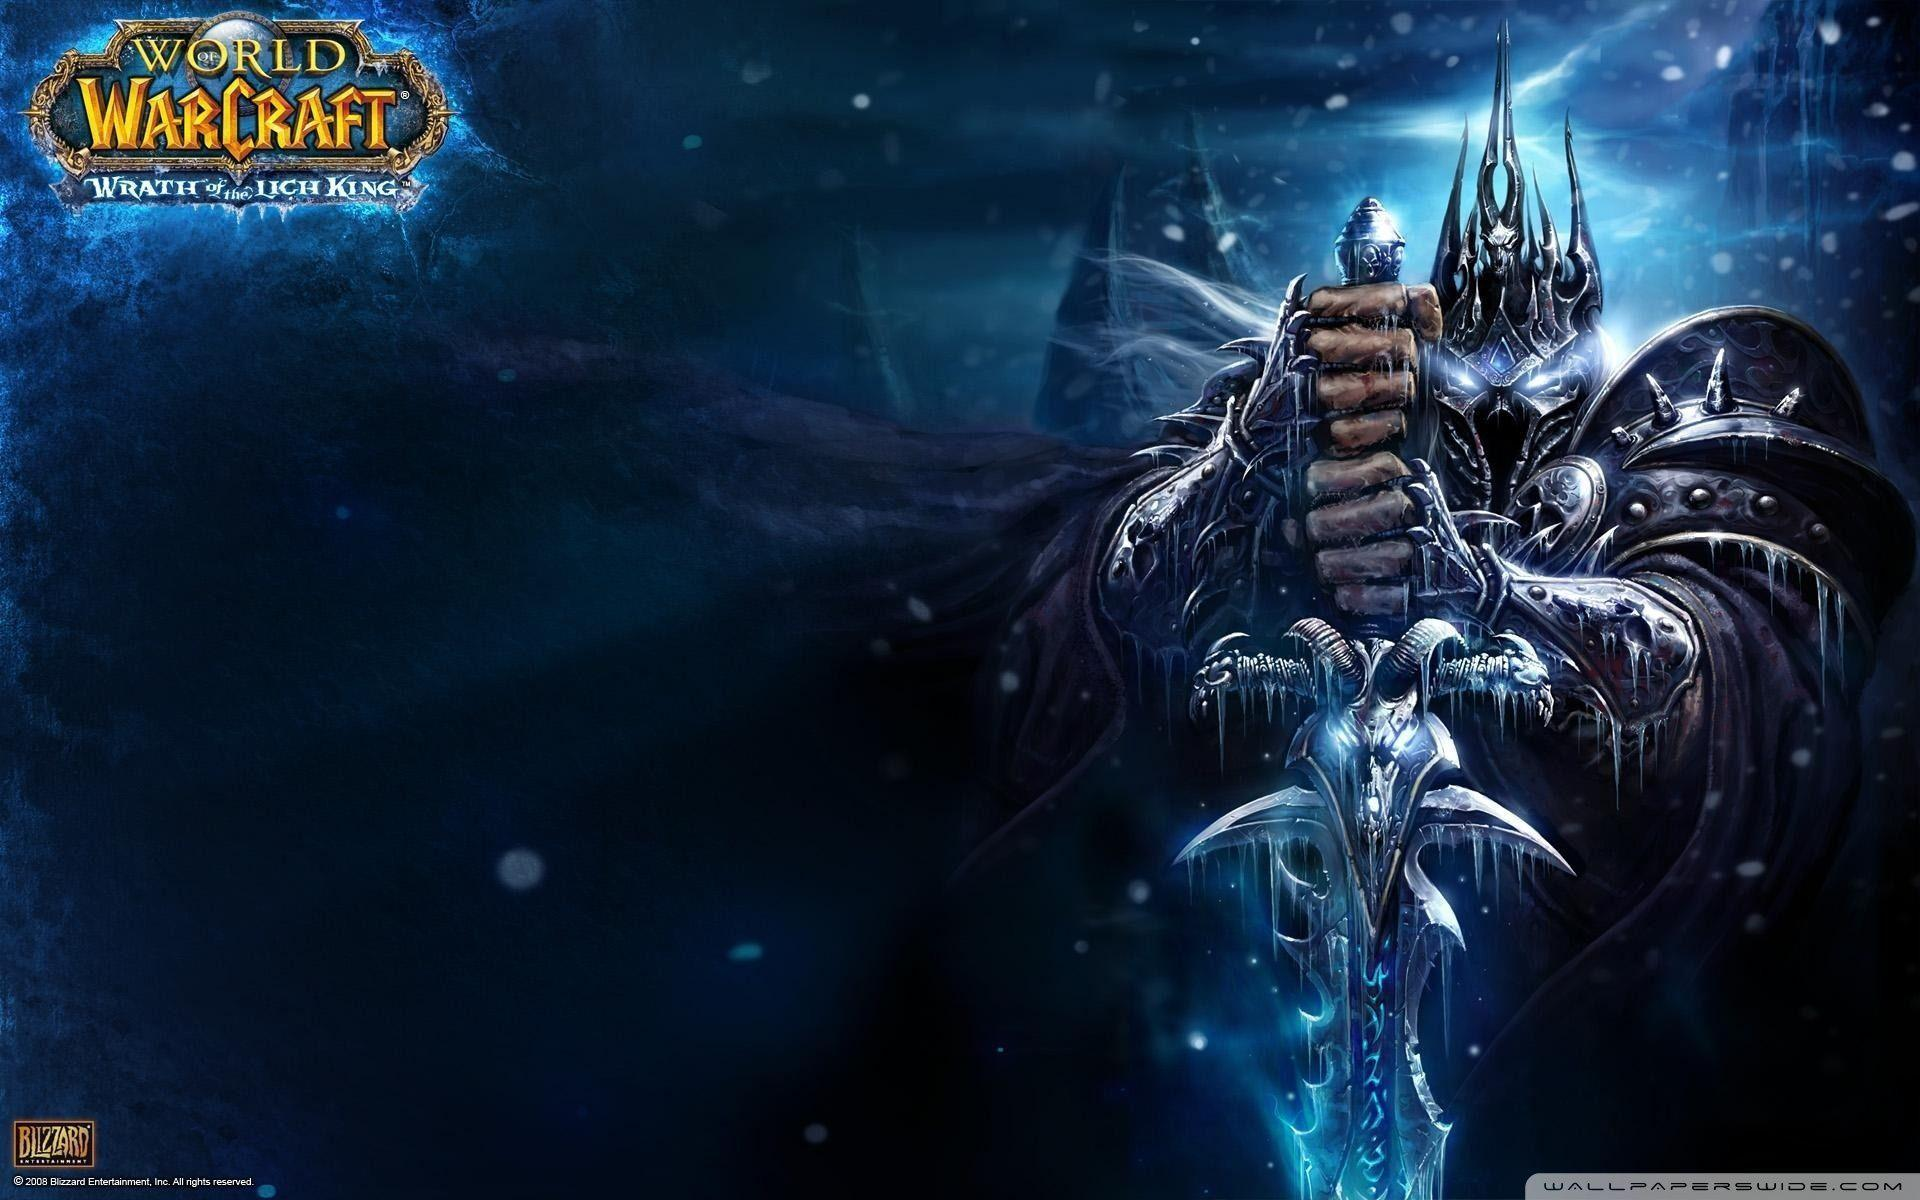 Lich King Wallpapers - Full HD wallpaper search - page 4